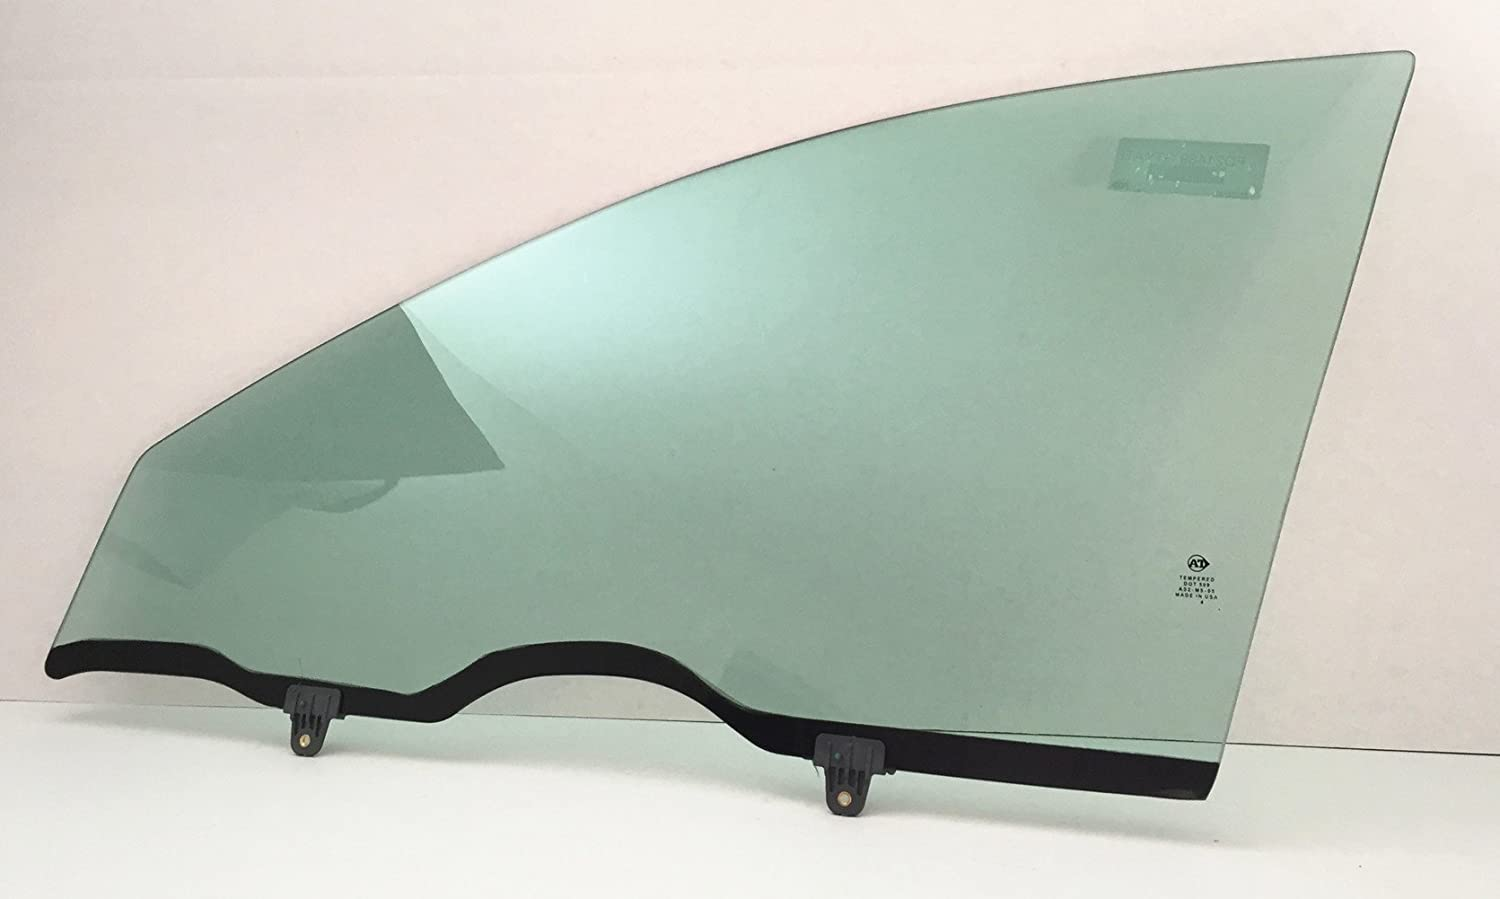 Driver Left Side Front Door Ni 5 OFFicial shop ☆ very popular Window Glass with Compatible